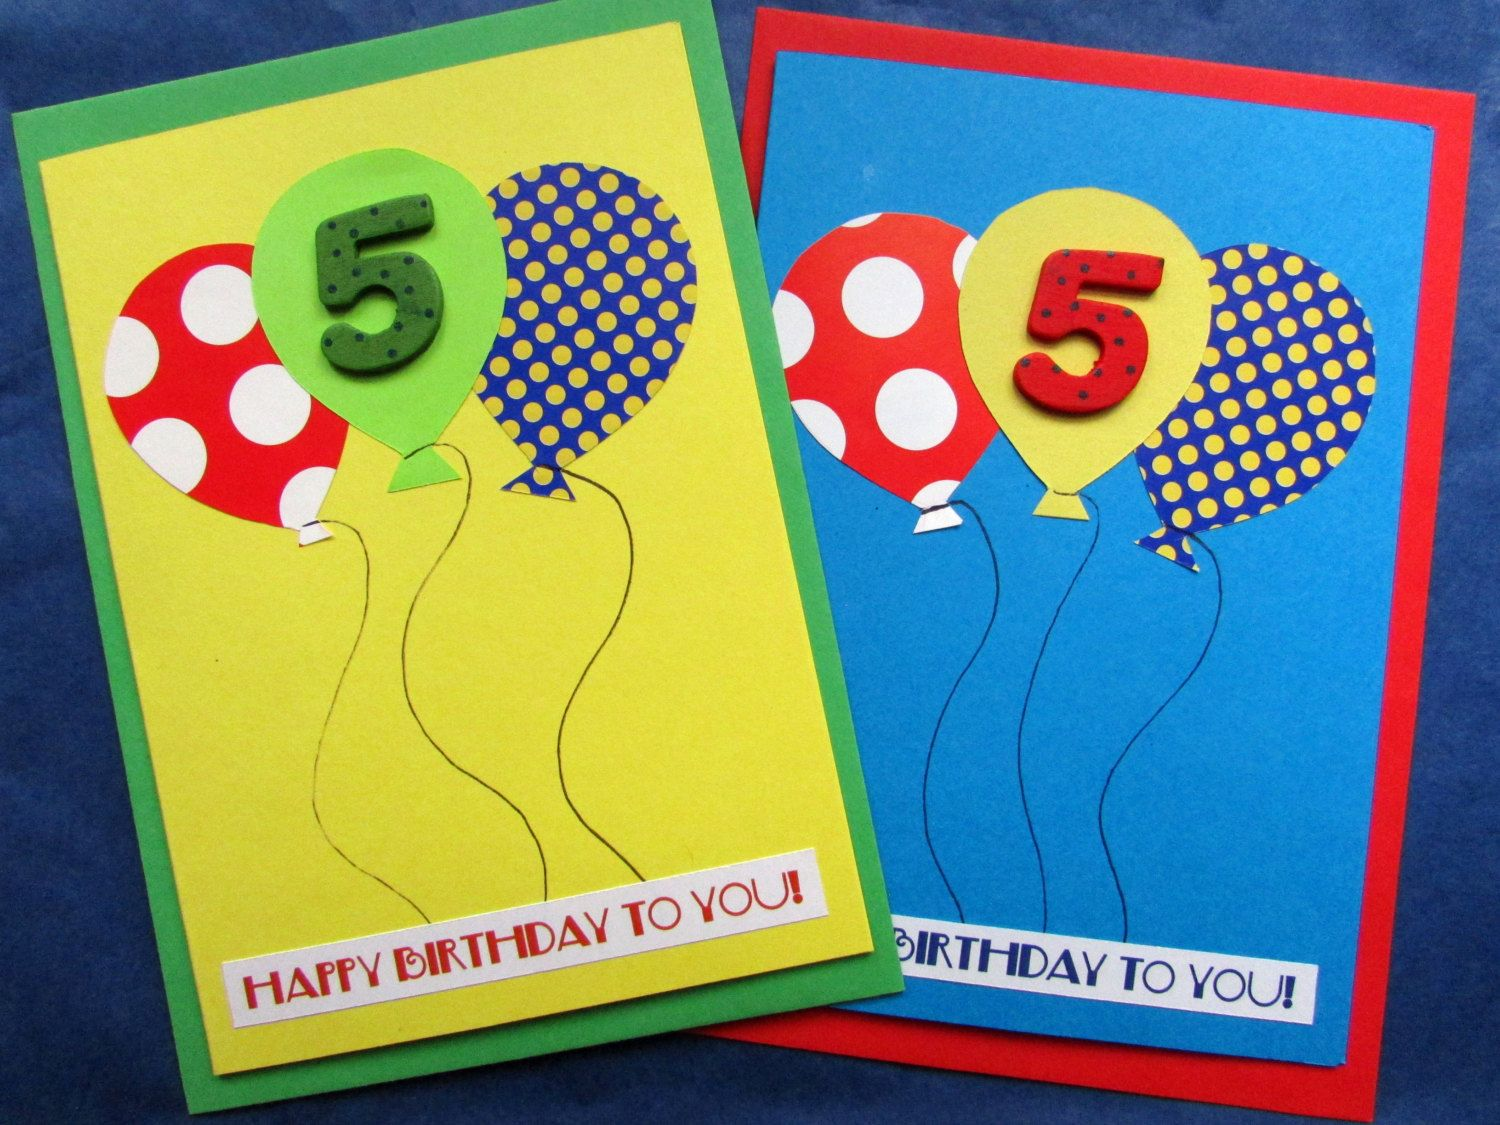 Age 5 Birthday Card With Balloons